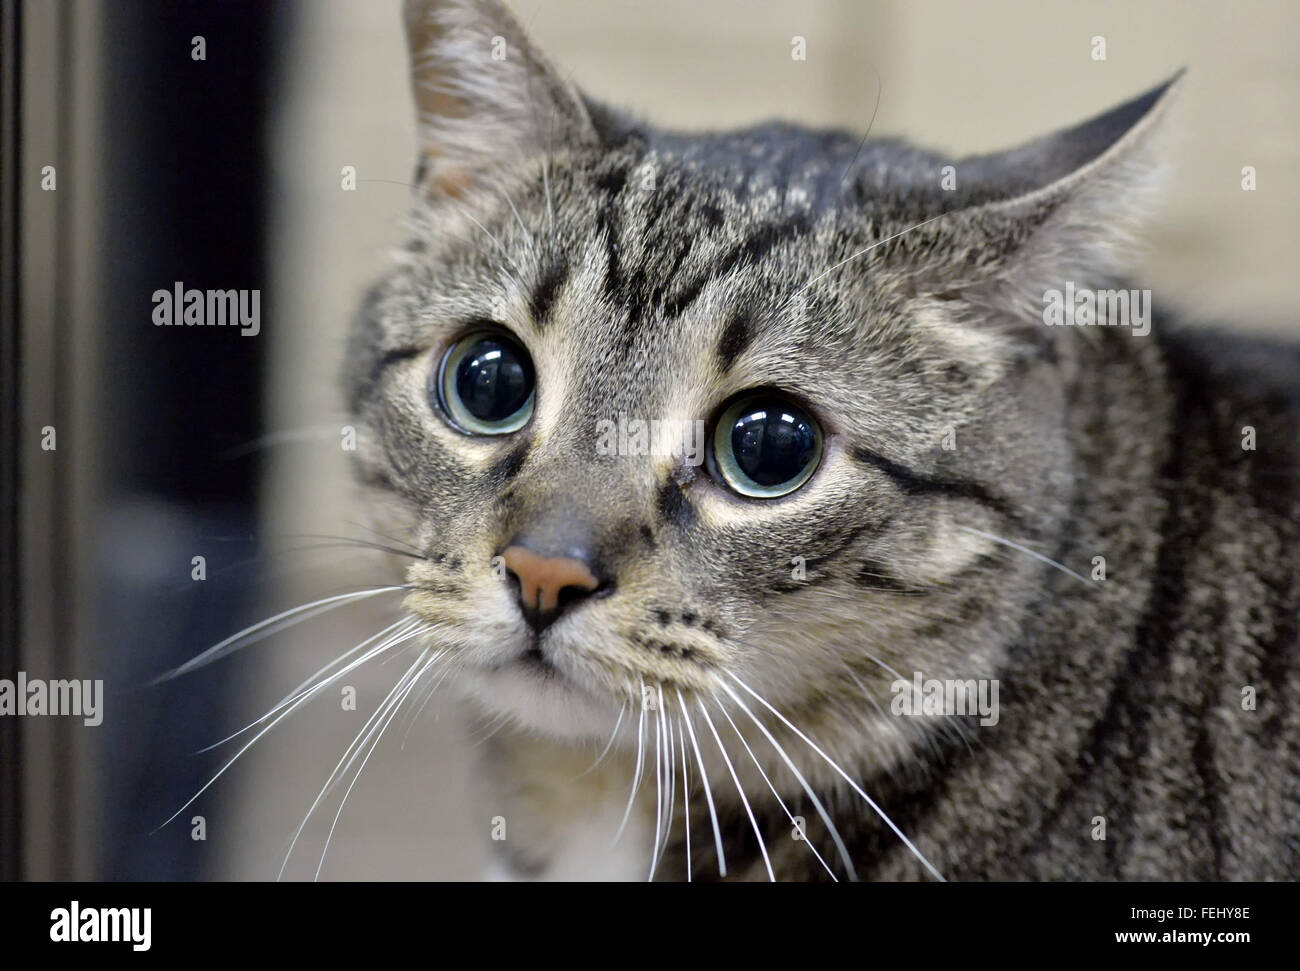 Wantagh, New York, USA. 7th Feb, 2016. Tabby cat ALEXANDER, the Mayor of Last Hope Rescue, is available for adoption, - Stock Image